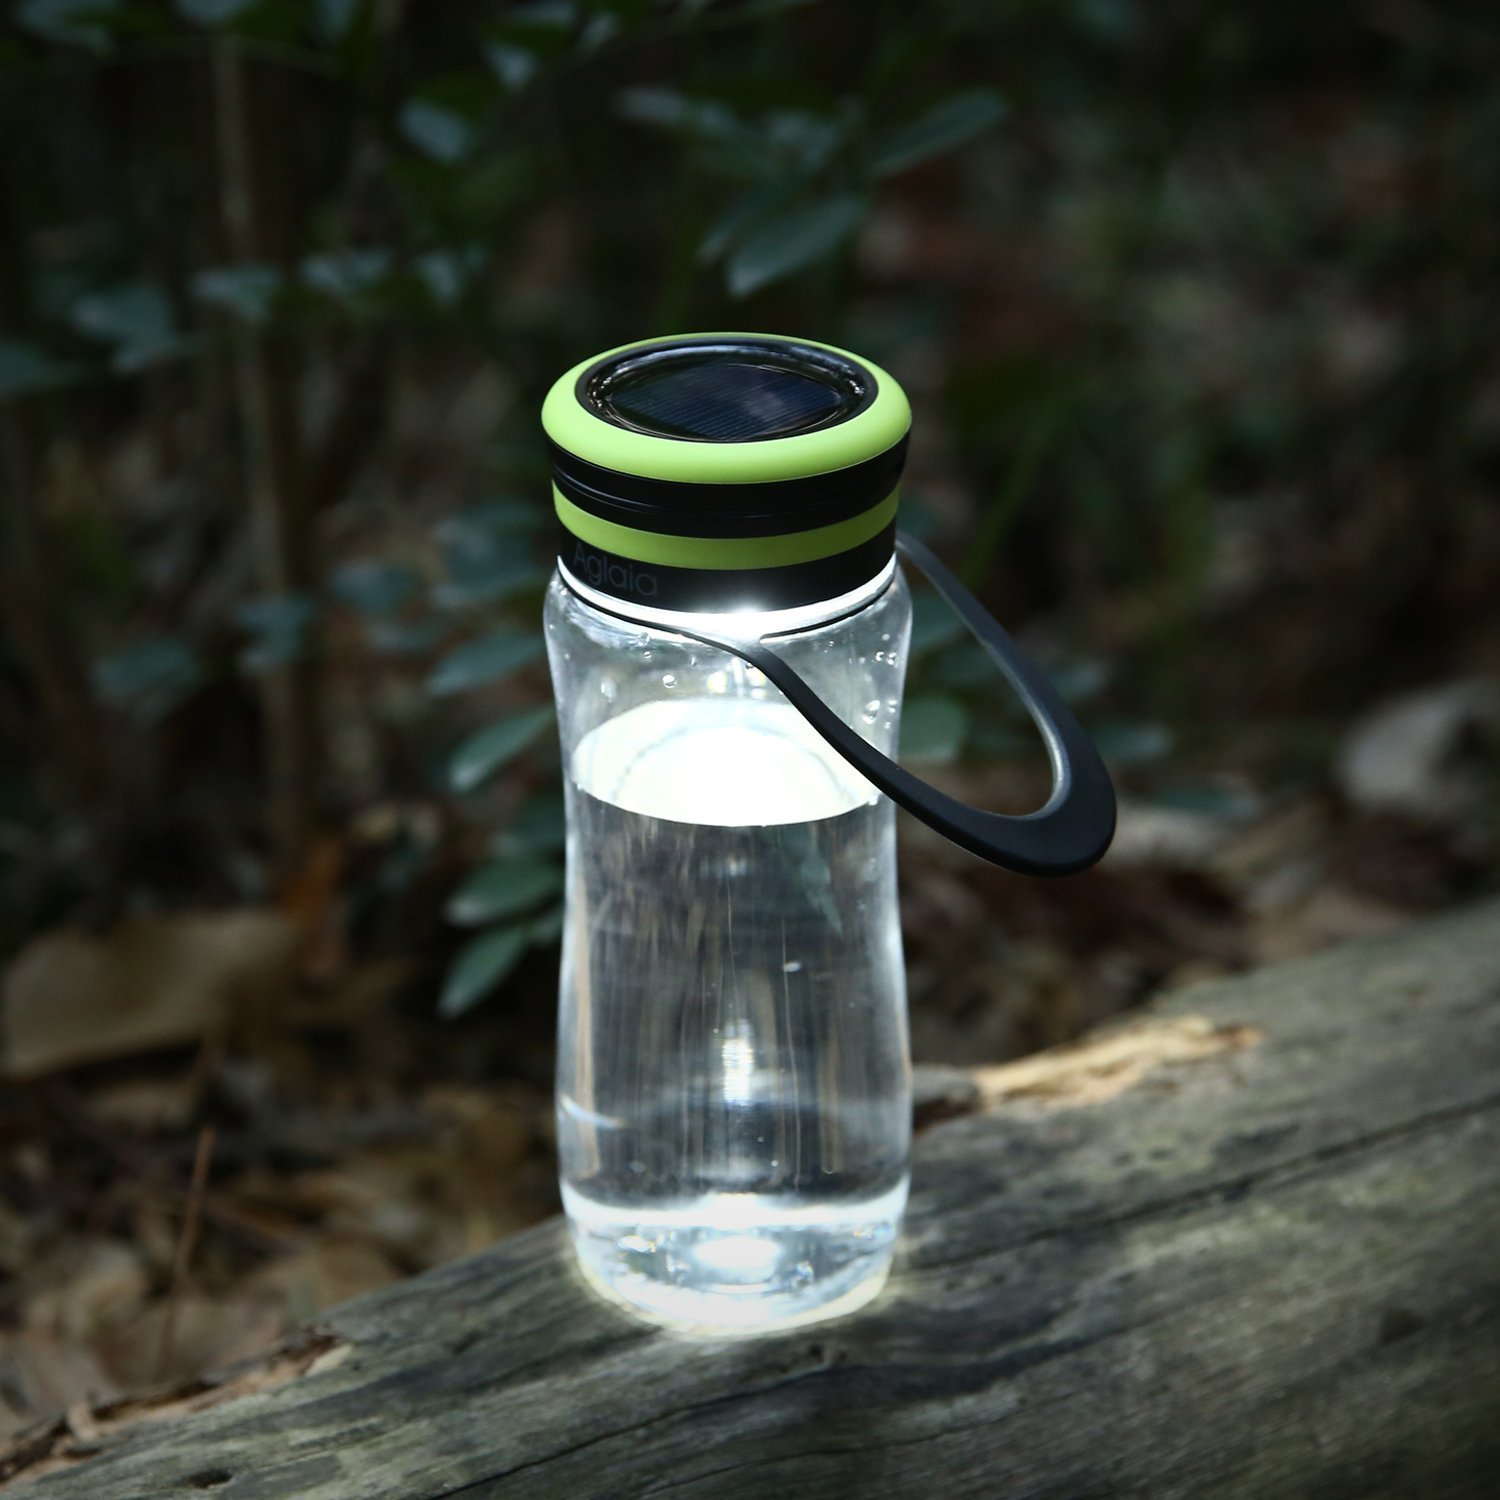 Water Bottle Aglaia Camping light Bottle with Built-in LED,3 Light Levels with USB & Solar Rechargeable, Outdoor Light with IPX6, Bottle Shade for Drinking, Storage